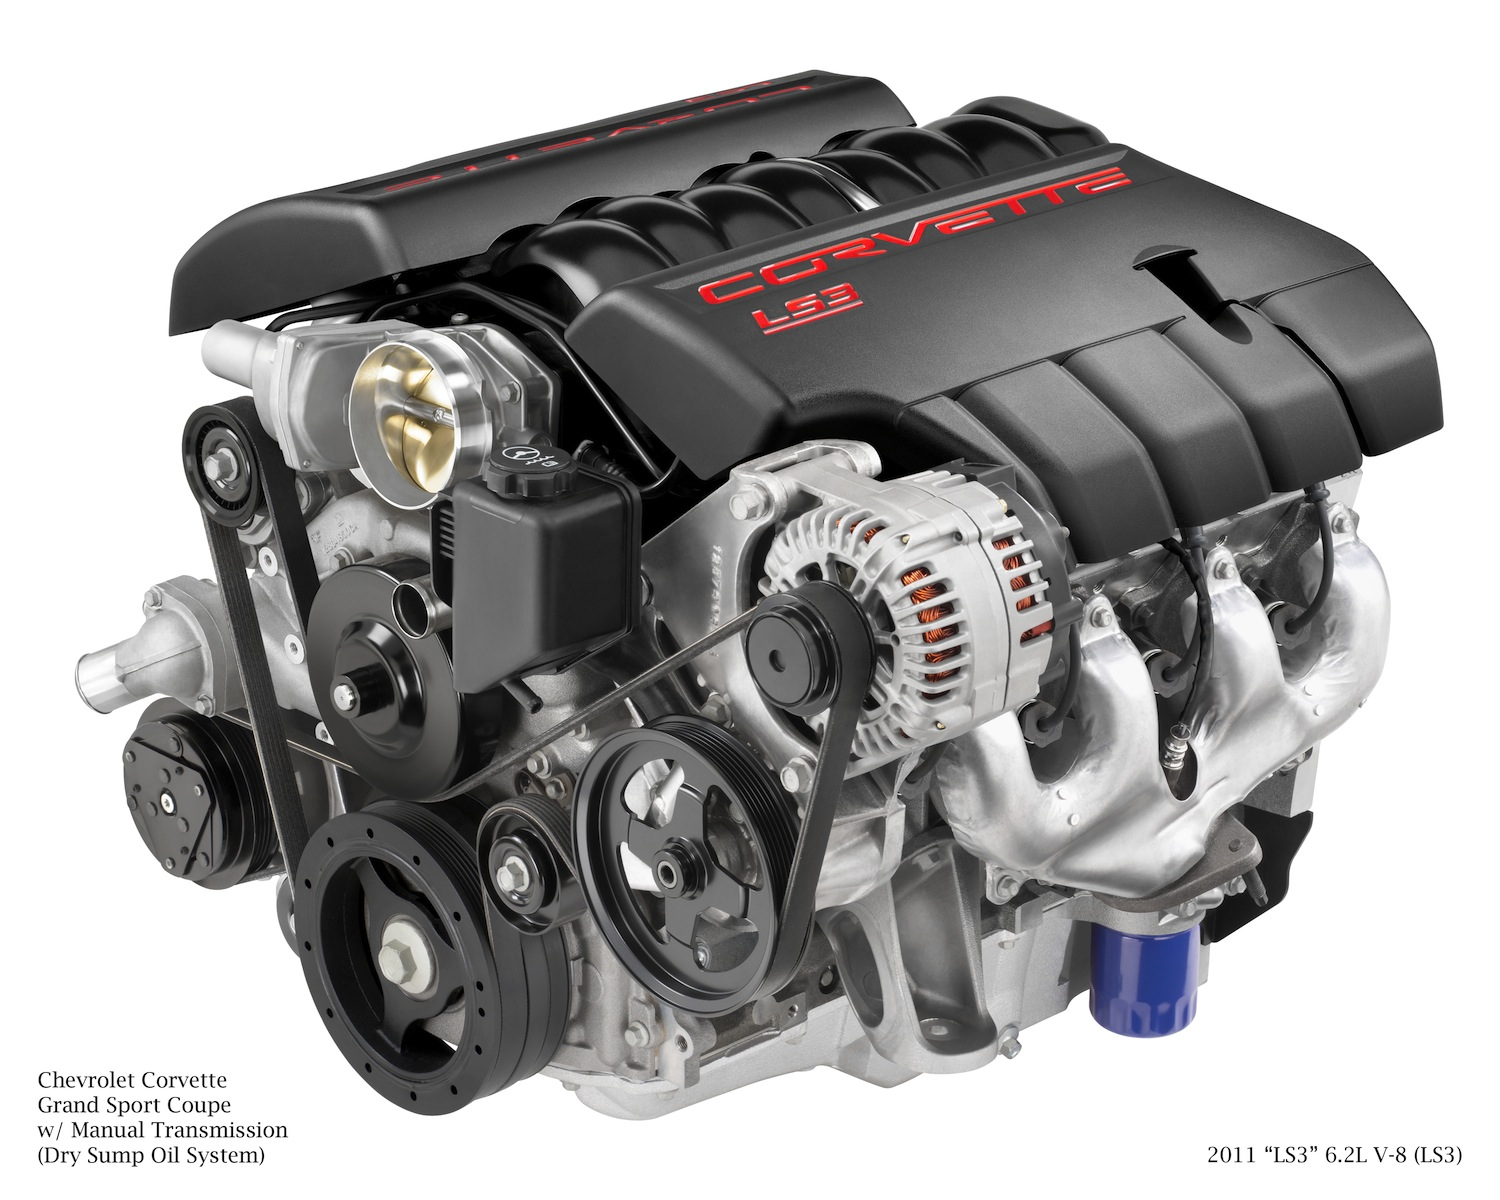 hight resolution of gm 6 2 liter v8 small block ls3 engine info power specs wiki gm authority